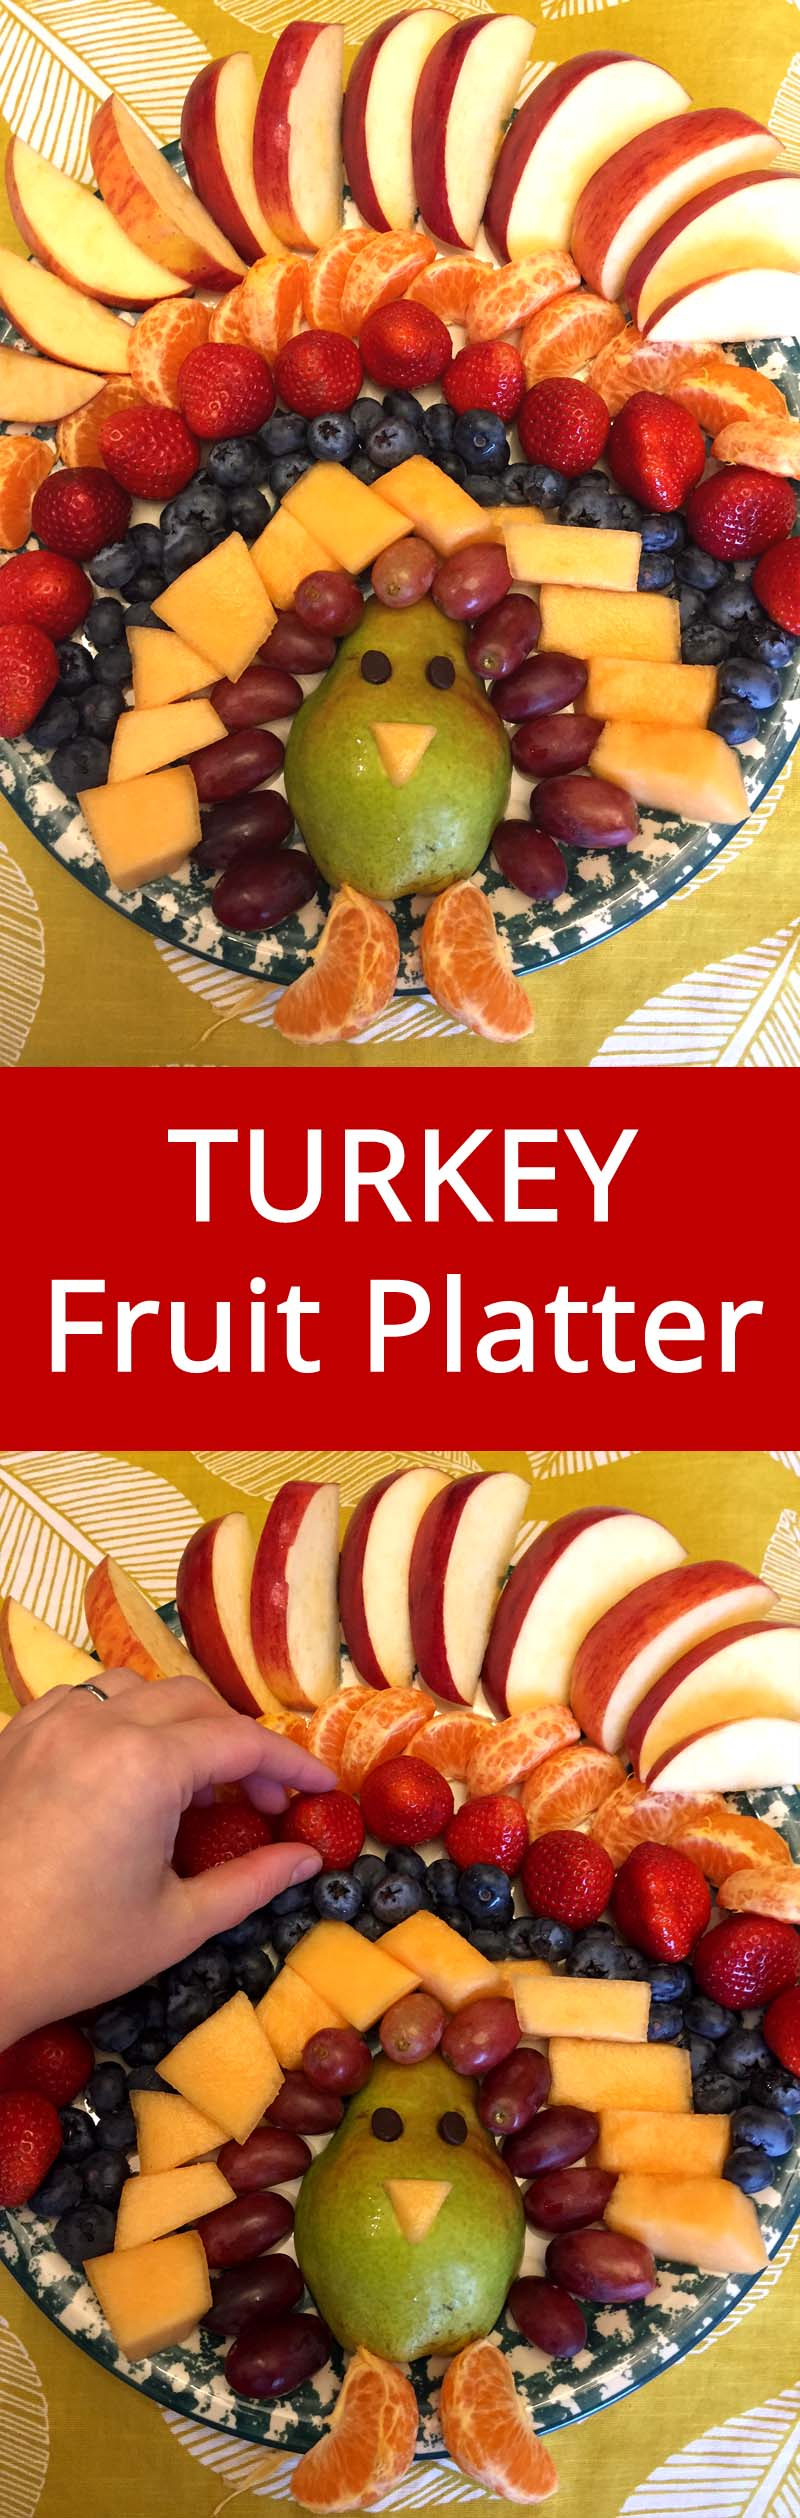 Turkey Fruit Platter :) Lots of other AMAZING Thanksgiving recipes on this site! | MelanieCooks.com